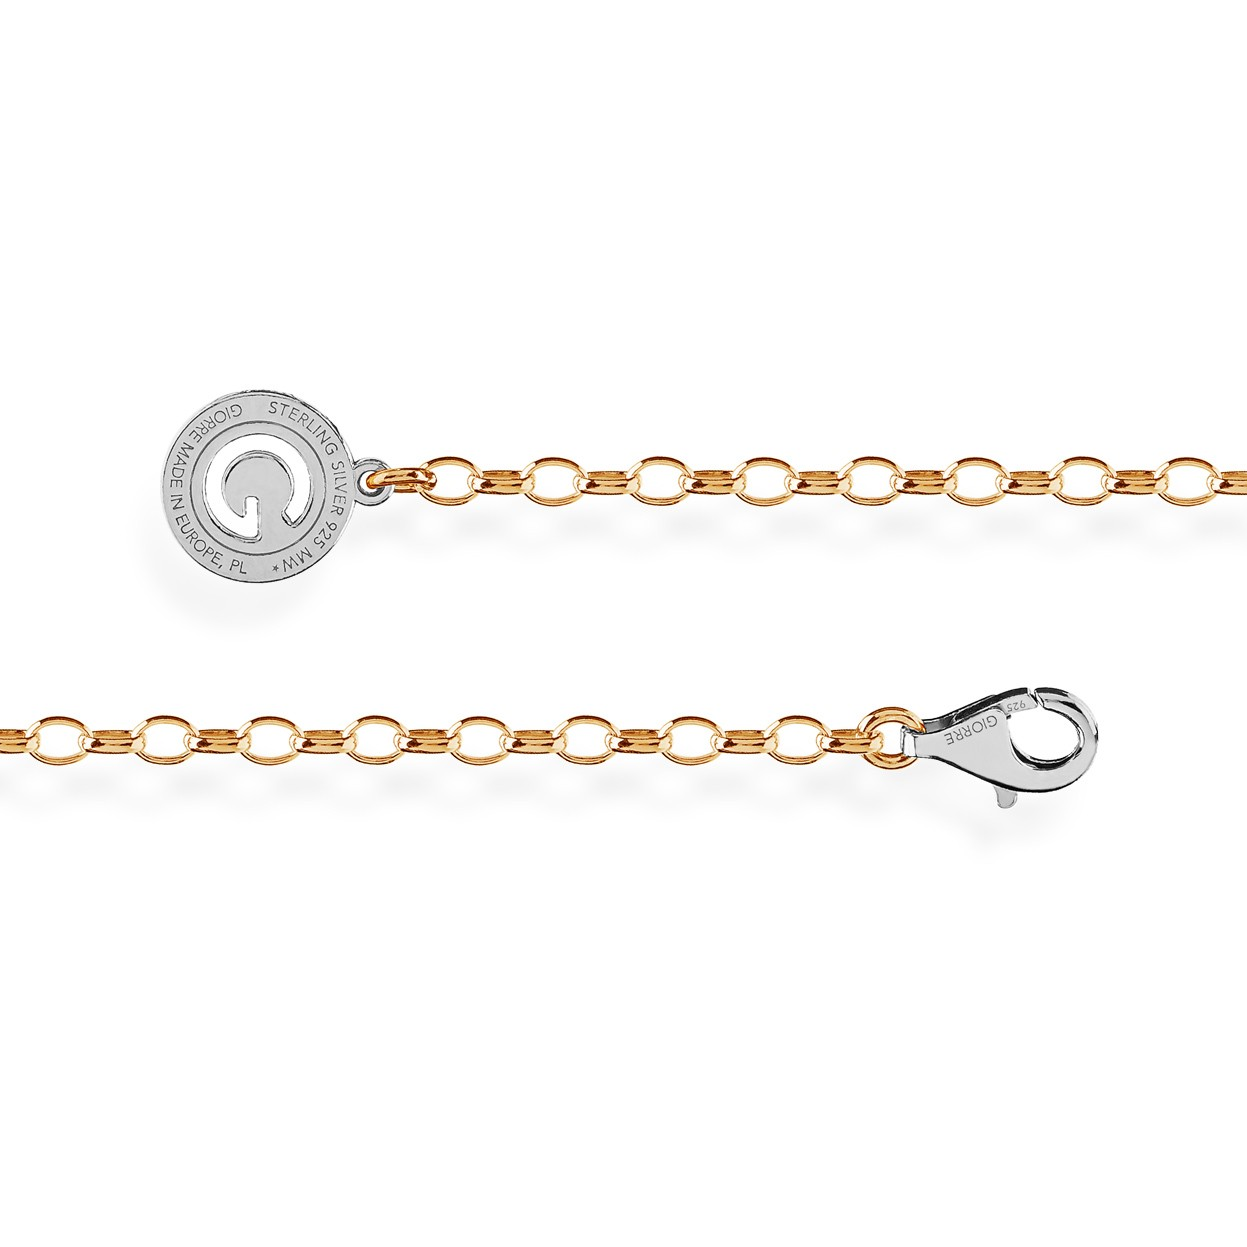 STERLING SILVER BRACELET 16-24 CM YELLOW GOLD, LIGHT RHODIUM CLASP, LINK 4X3 MM